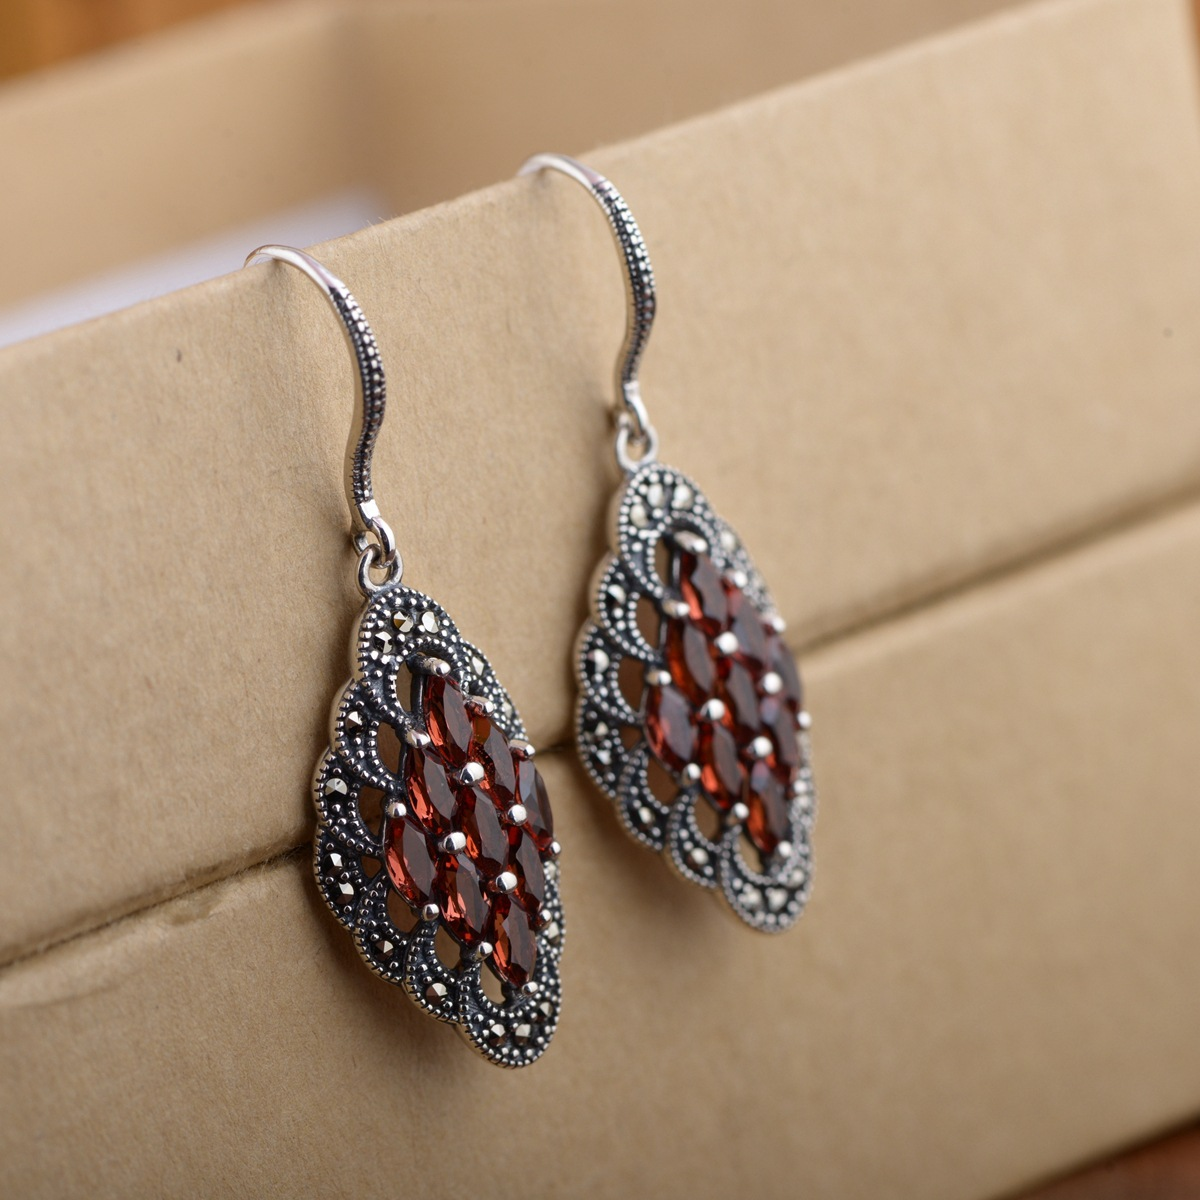 Guarantee 925 Sterling Silver Drop Earrings For Women Inlaid Natural Garnet Red Stone Vintage Jewelry Brincos 2017